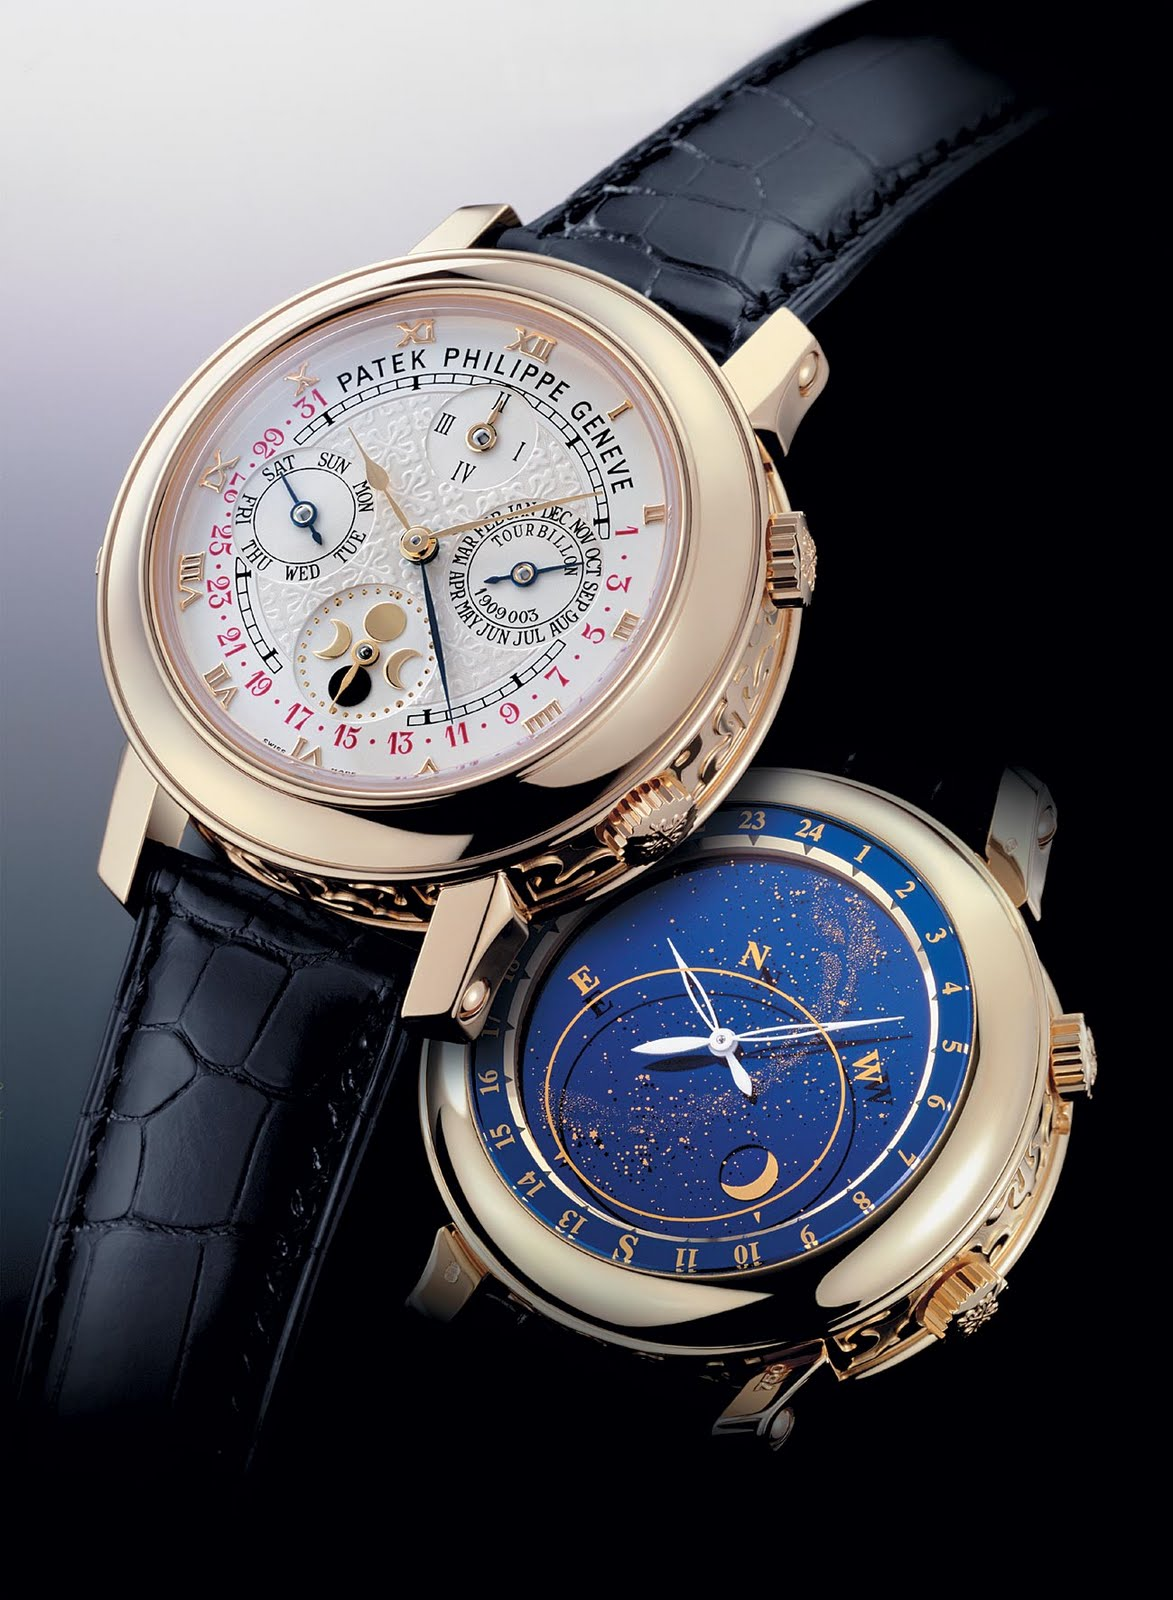 Patek philippe sky moon tourbillon ref 5002 most expensive watch in the world for Patek phillipe watch